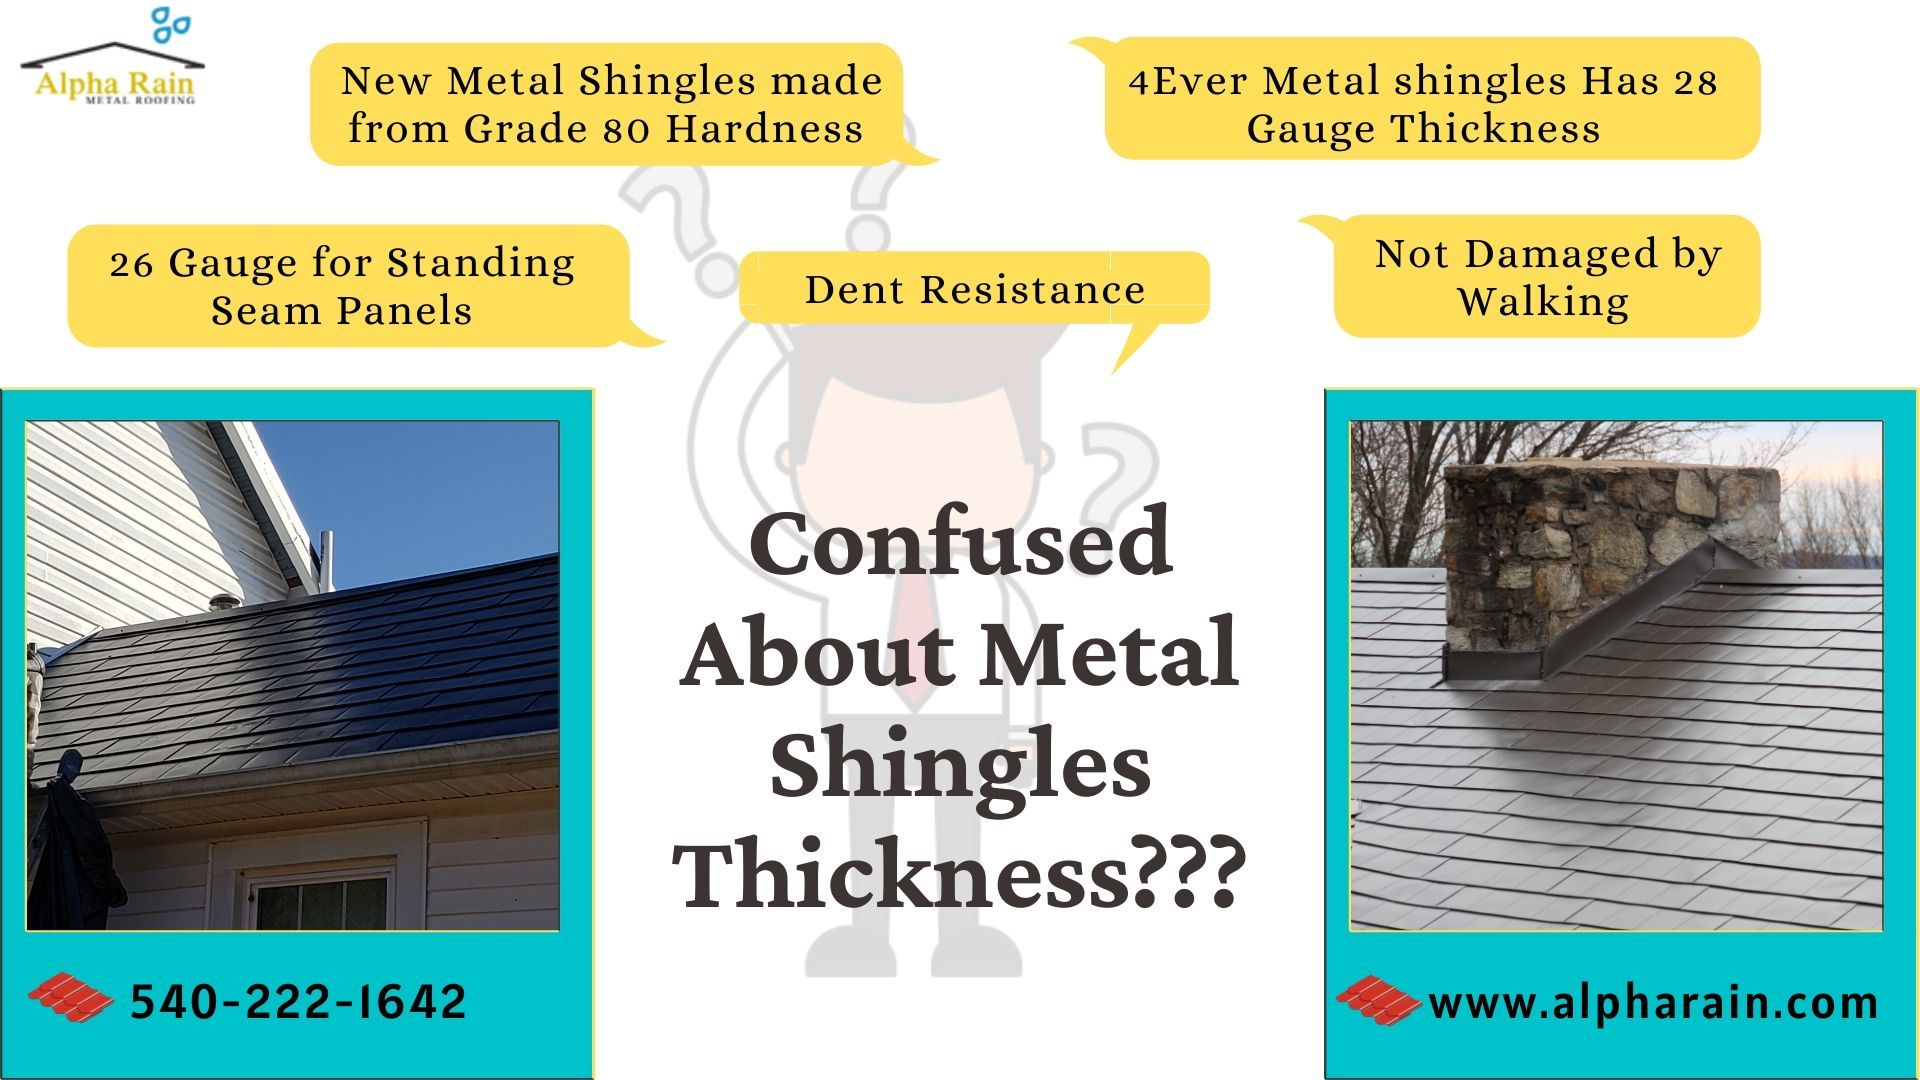 Before Installation Must Check Out Perfect Thickness Hardness Of The Metal Shingles This Prevents Dent Mold From Creating In 2020 Metal Shingles Shingling Metal